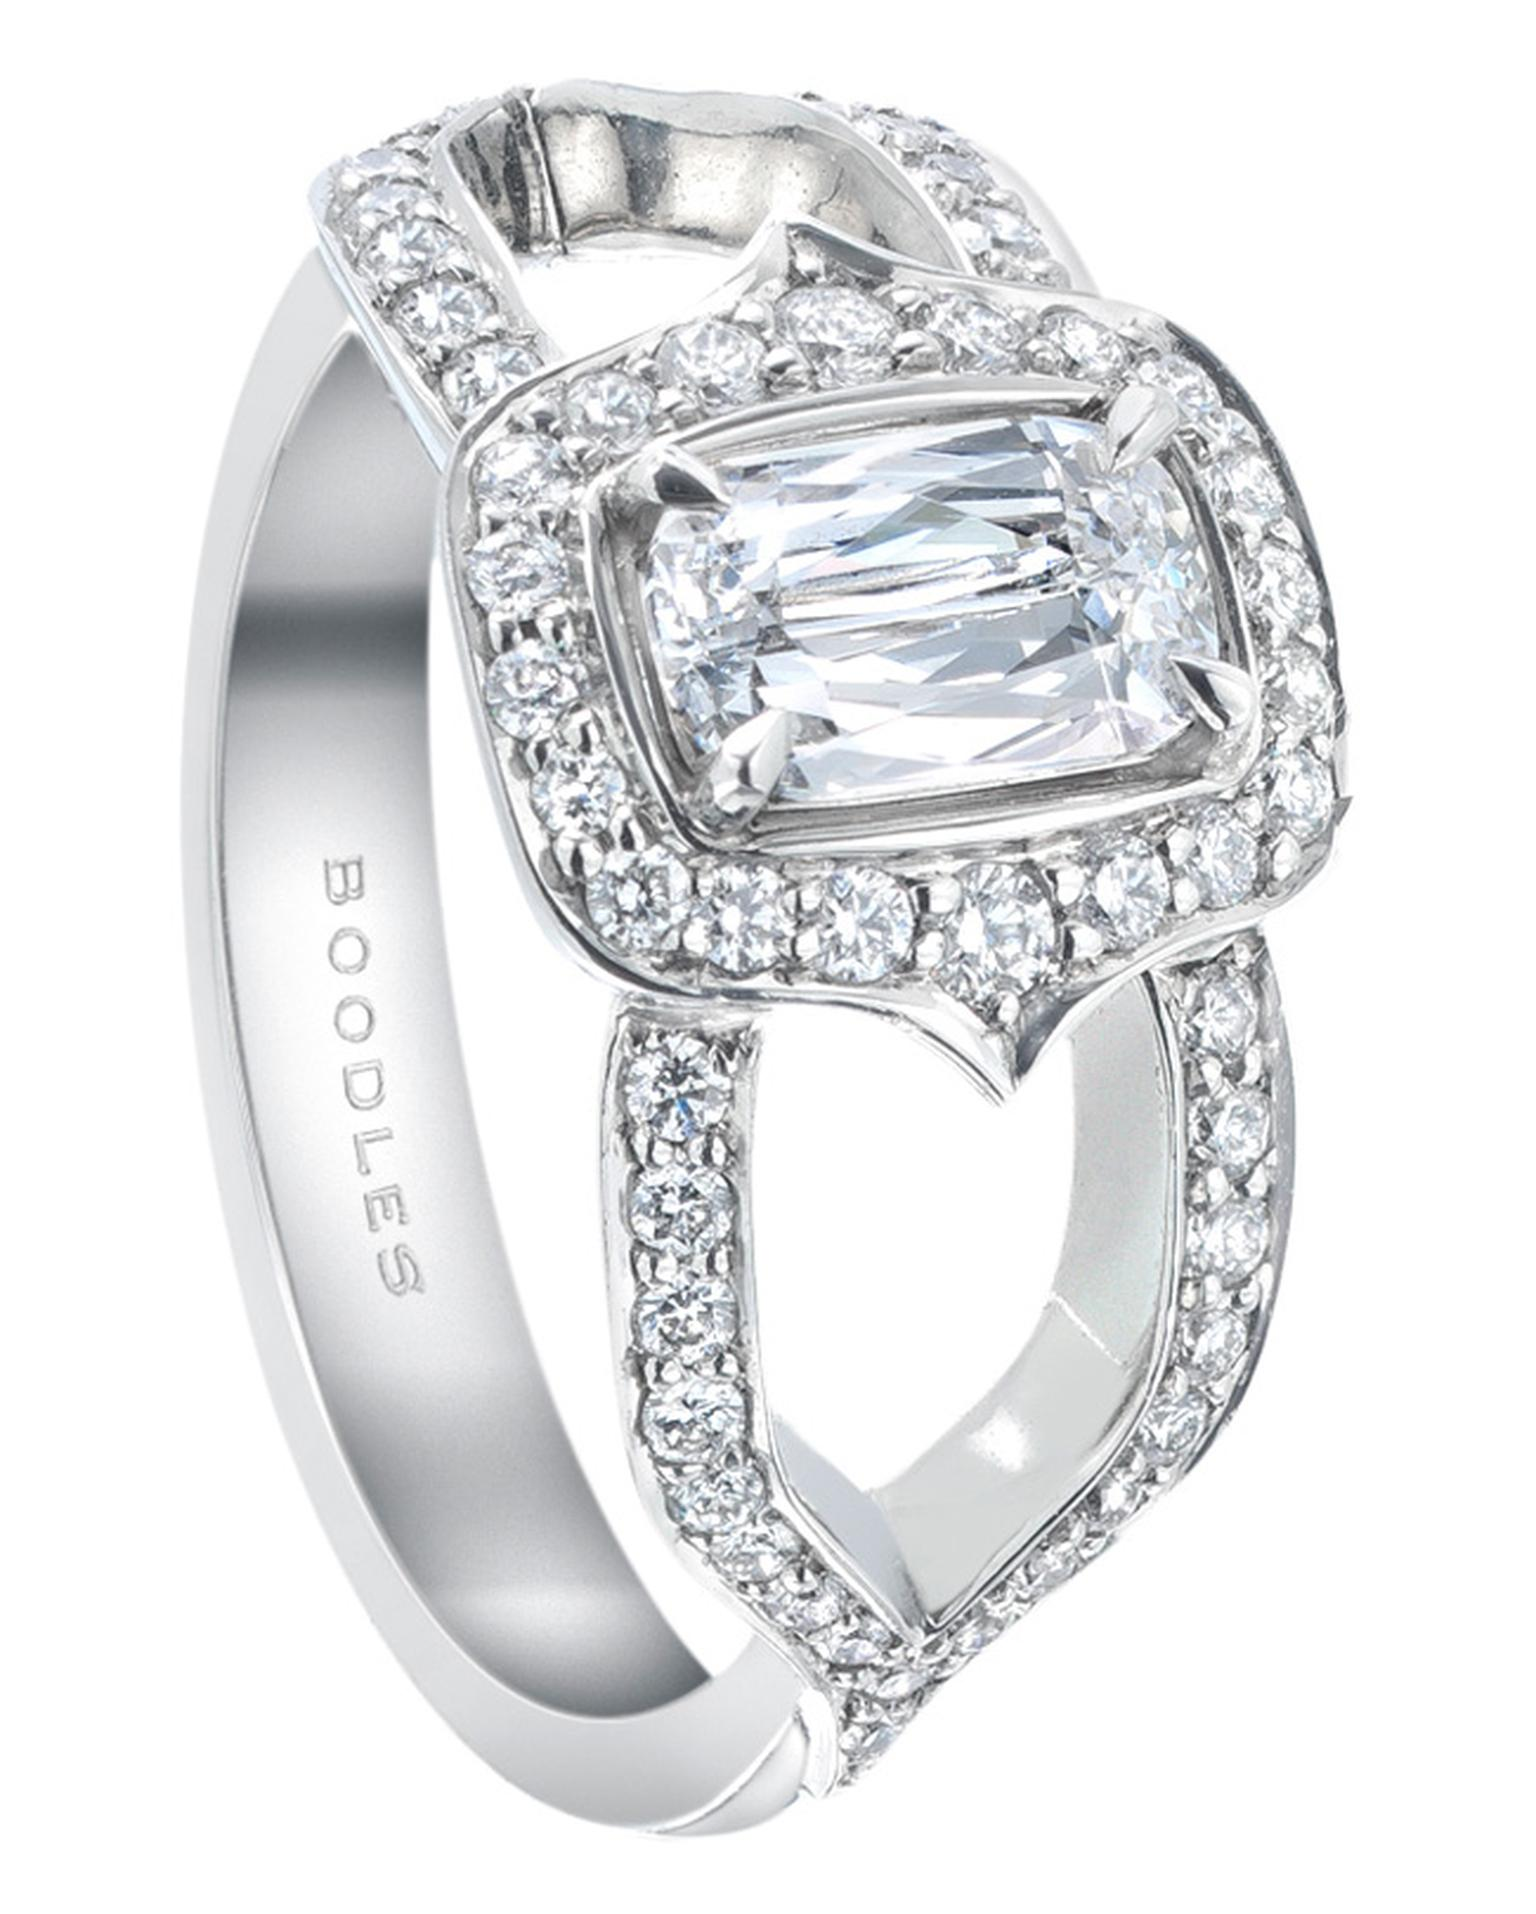 Boodles Wisteria diamond ring_20131205_Main